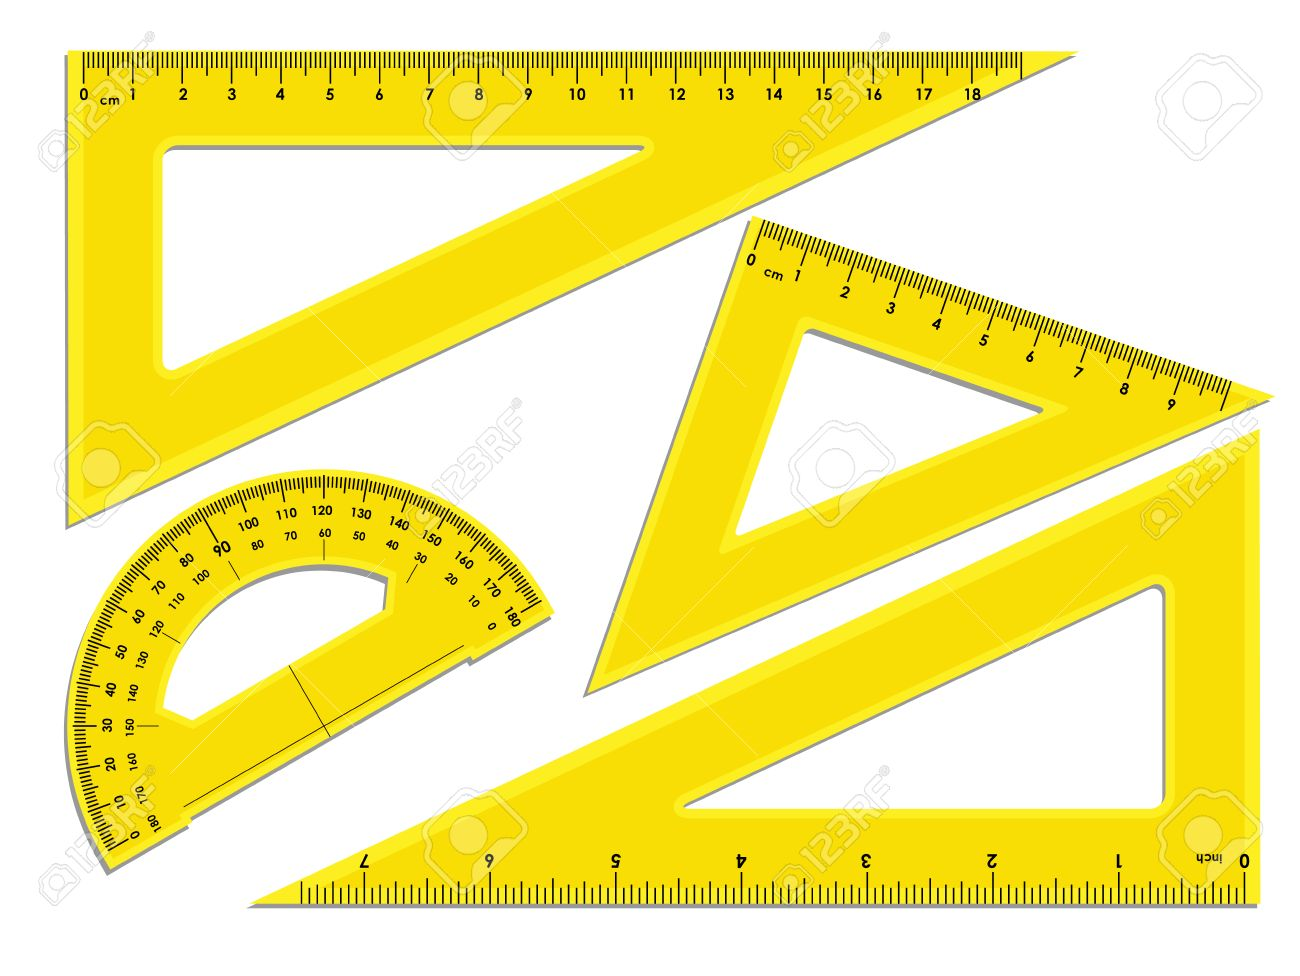 Triangle rulers and protractor rulers marked in centimeters triangle rulers and protractor rulers marked in centimeters and inches stock vector 58039747 buycottarizona